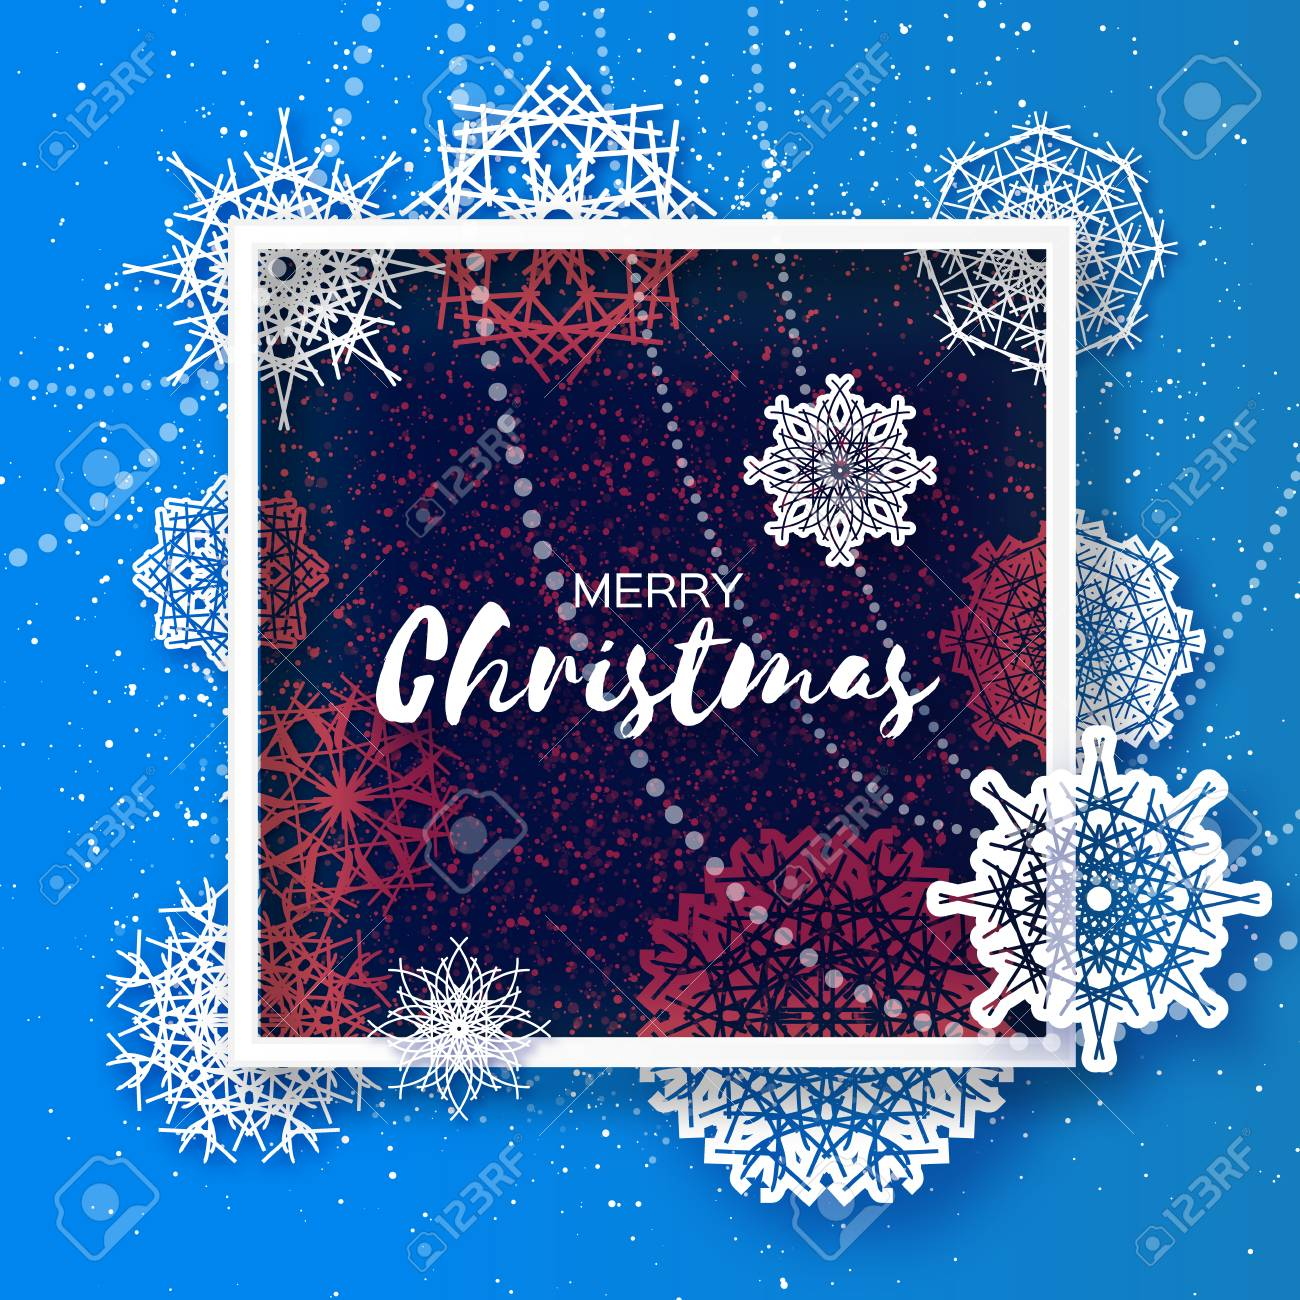 Merry Christmas Greeting Card Origami Snowflake On Blue Background